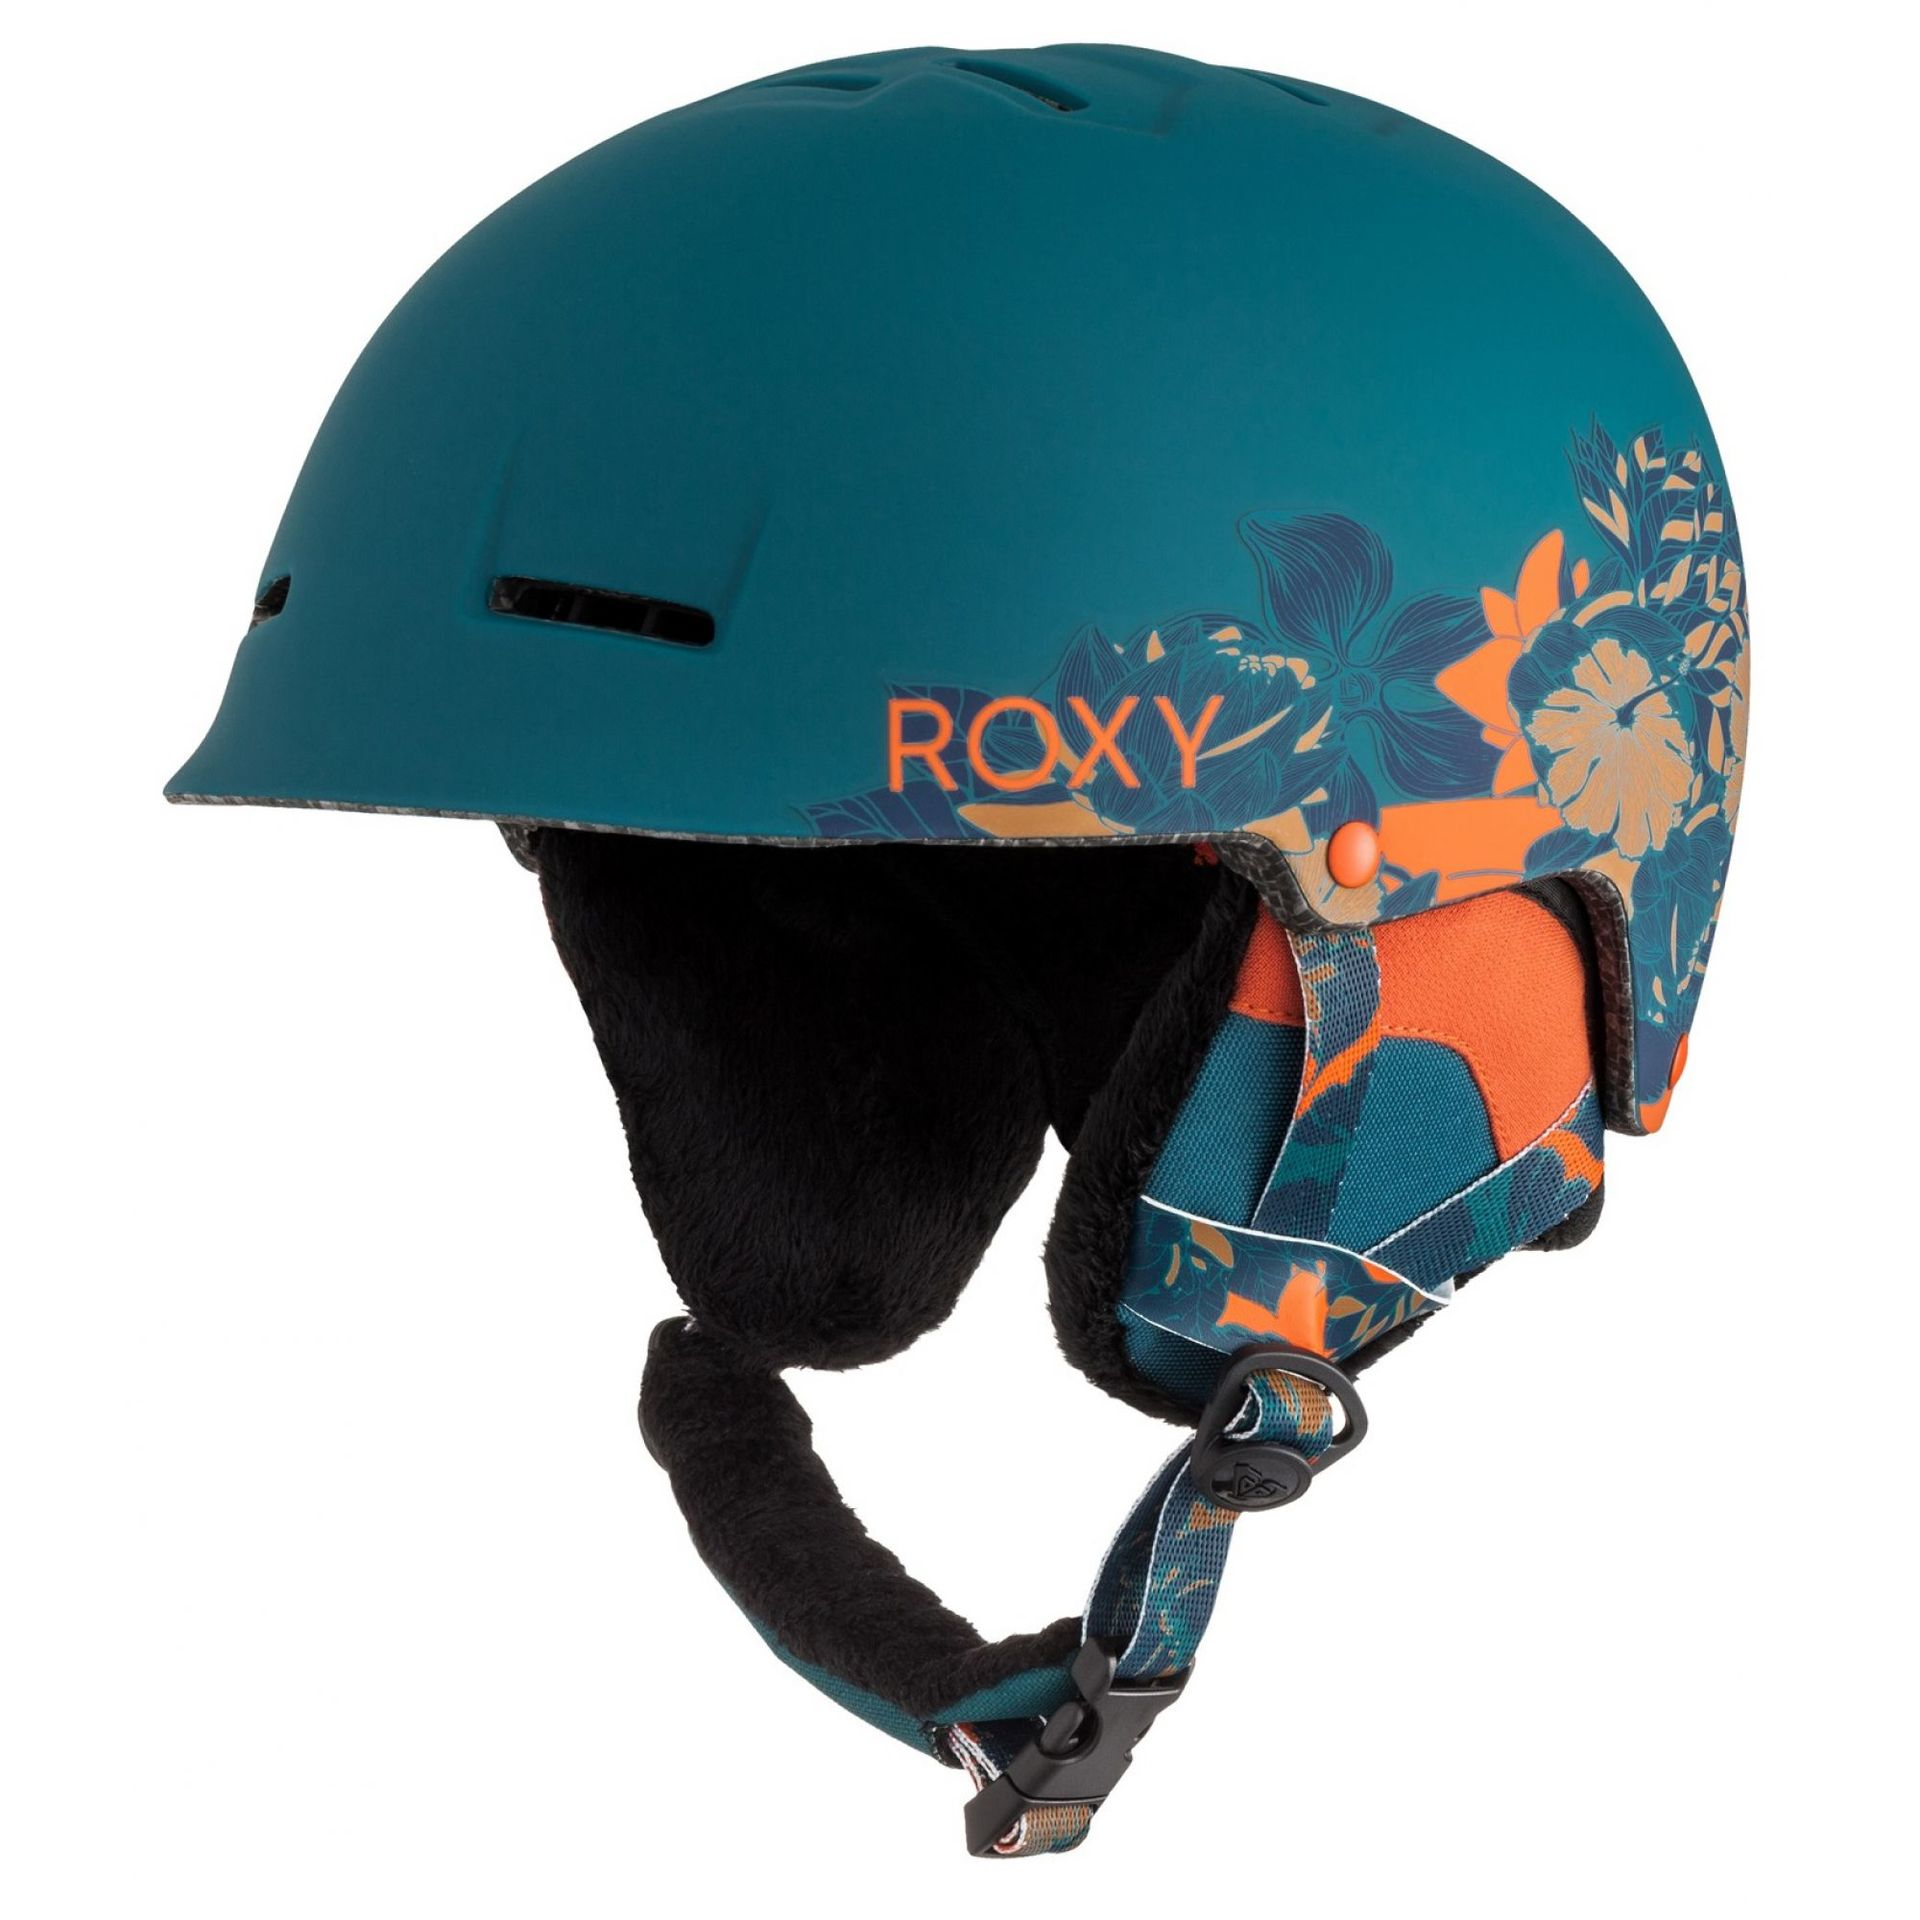 KASK ROXY AVERY BSK6 AMAZONE FLOWERS BLUEPRINT